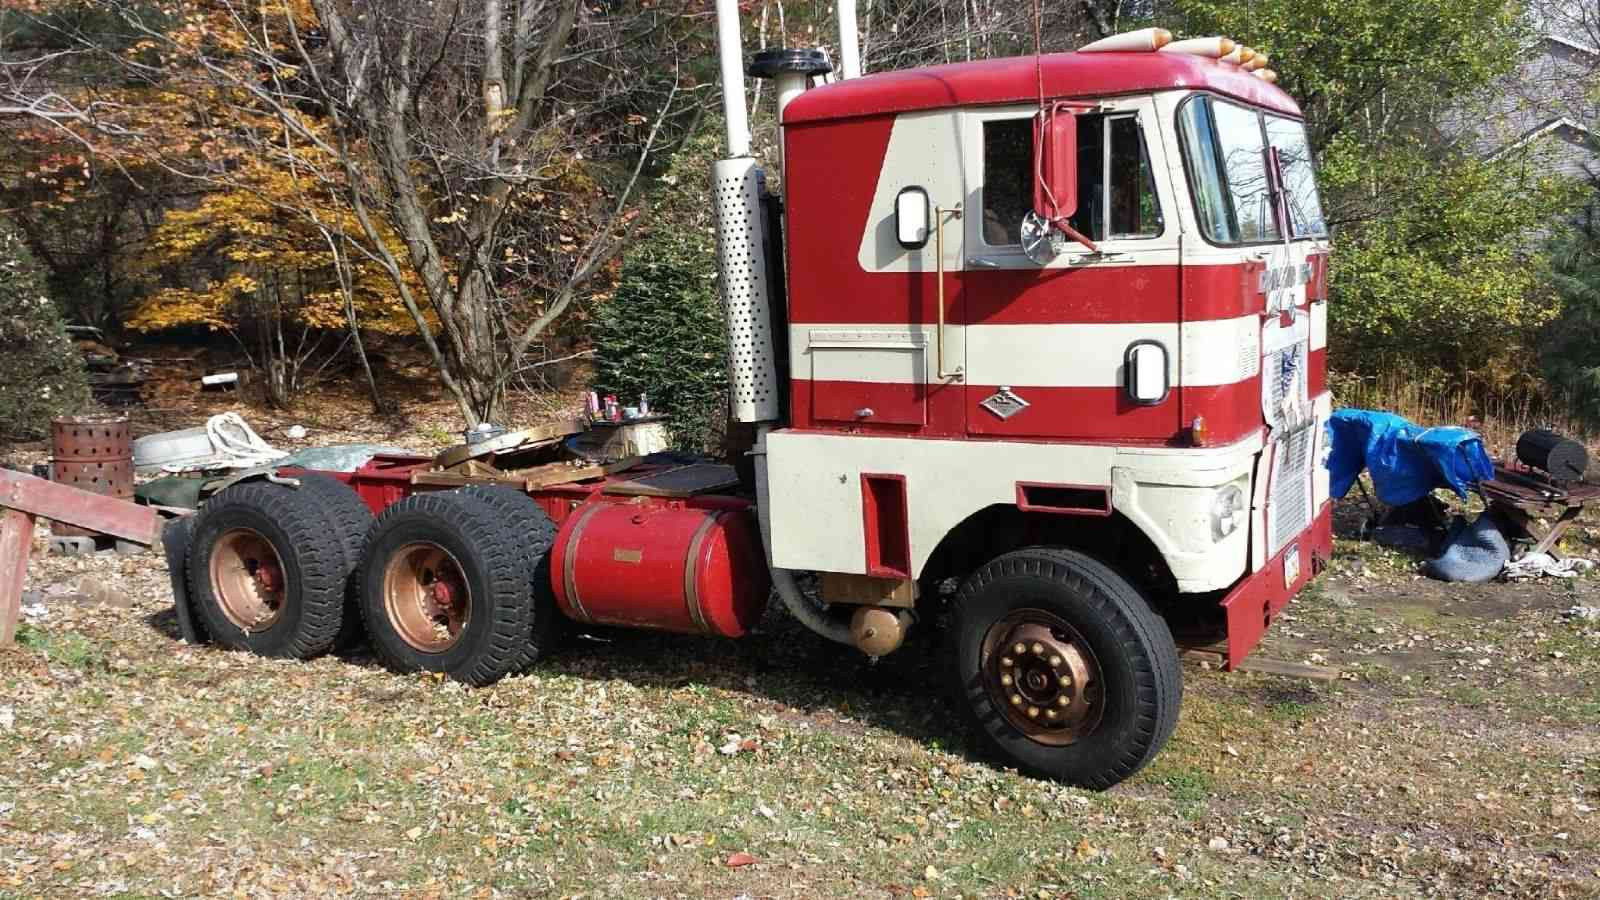 Trucks For Sale: BangShift.com 1971 Diamond REO Truck For Sale With 318hp